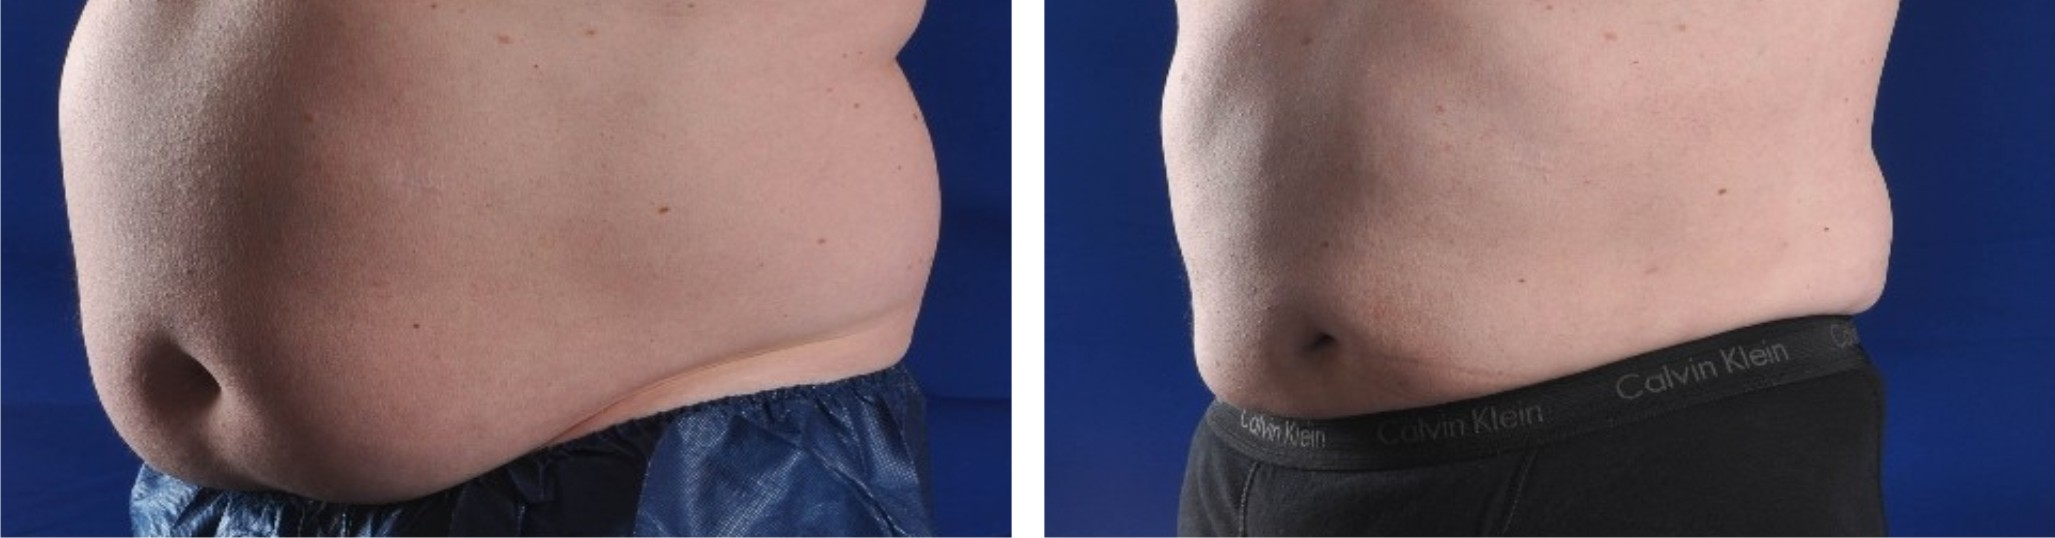 Liposuction Image One